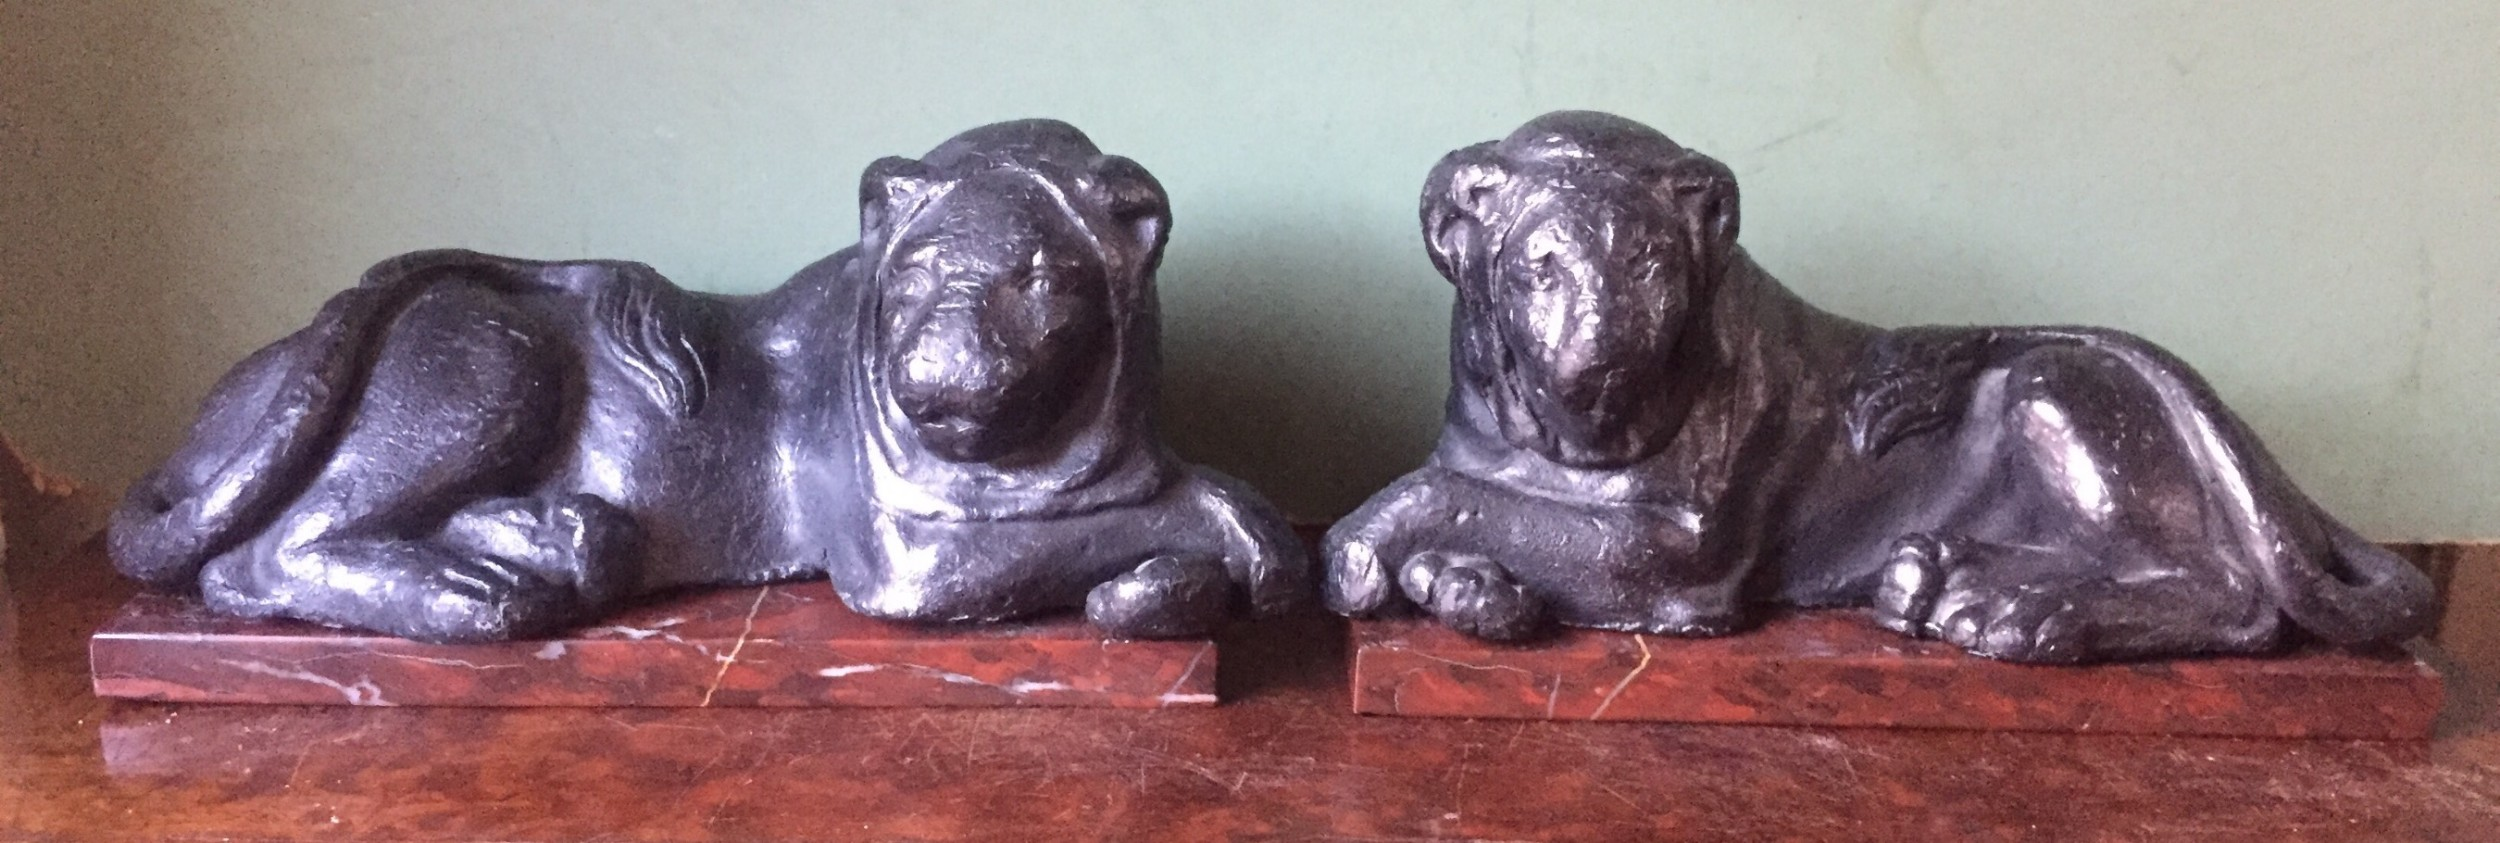 pair of early c19th 'grand tour' souvenir patinated castlead lions mounted upon rouge griotte marble plinth bases copies of the egyptian lions from the vatican rome